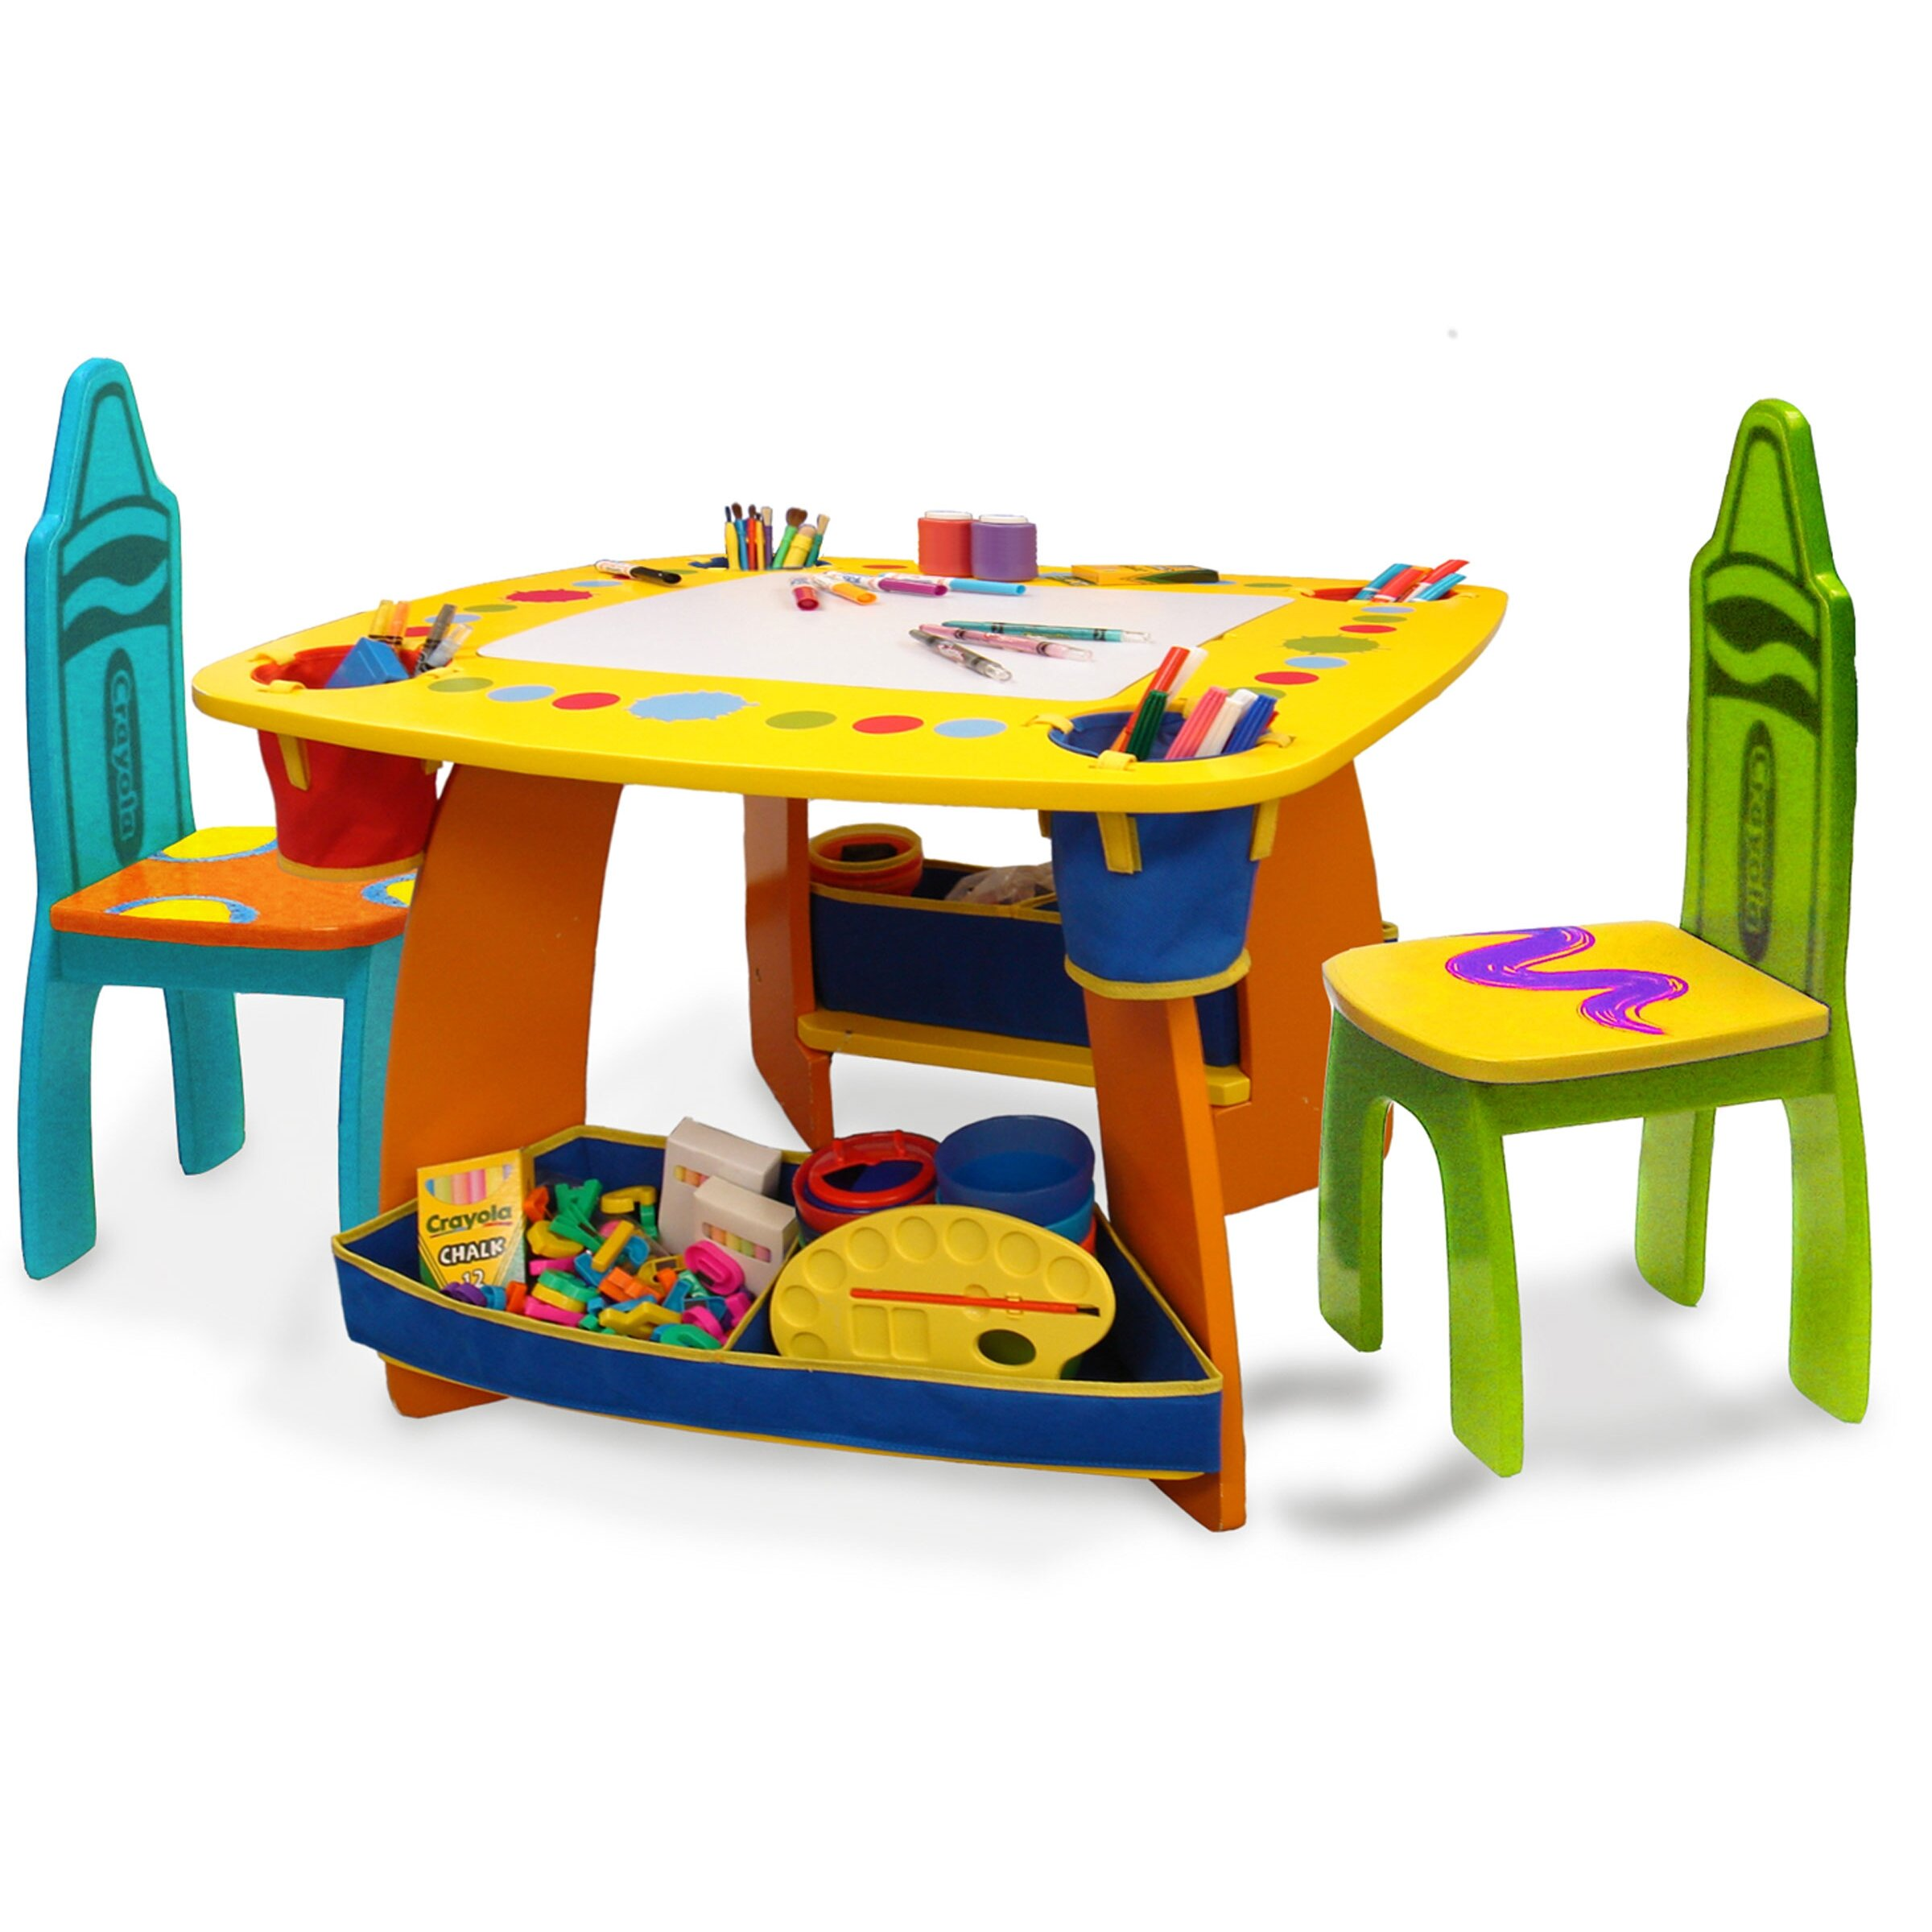 Grow n Up Crayola Wooden Kids 3 Piece Table and Chair Set – Chair and Table for Kids